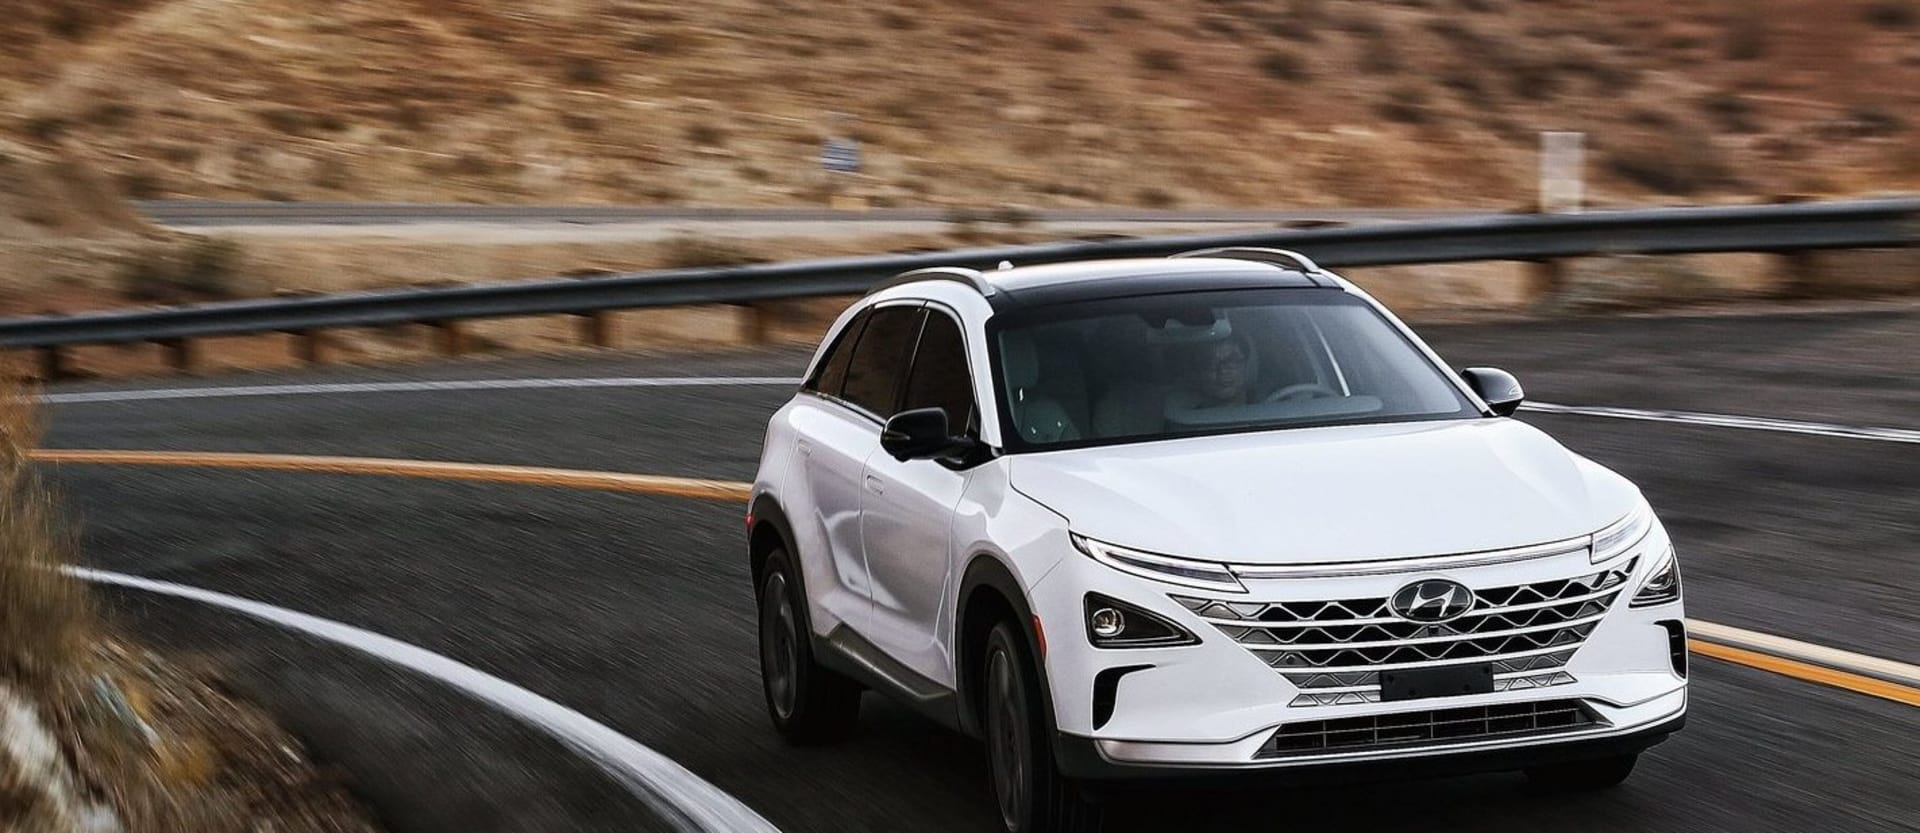 Hydrogen cars to be cheaper than EVs by 2030 says Hyundai